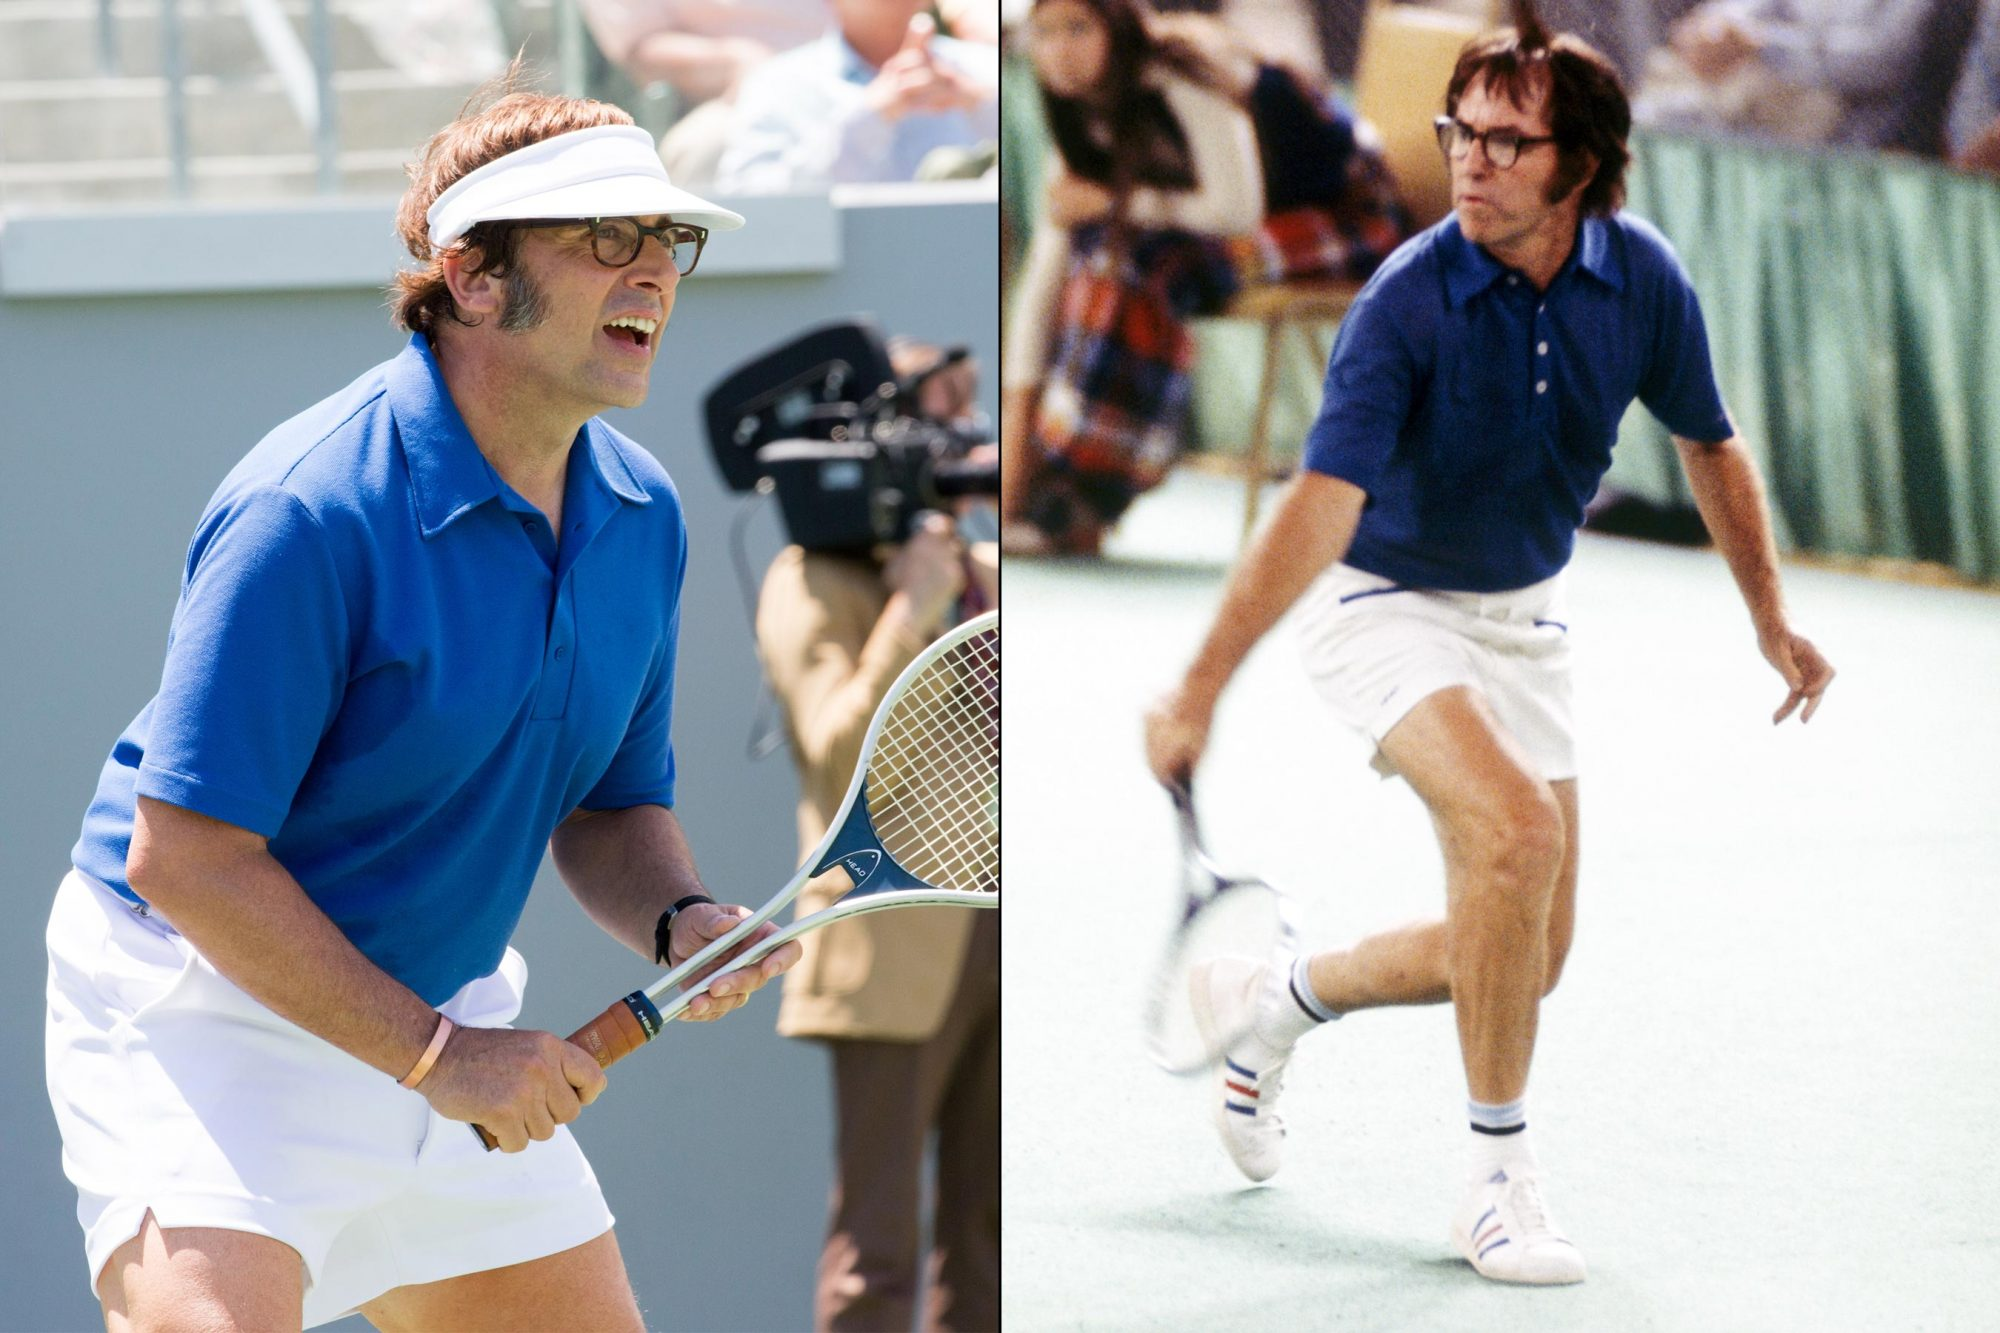 Steve Carell as Bobby Riggs (Battle of the Sexes)